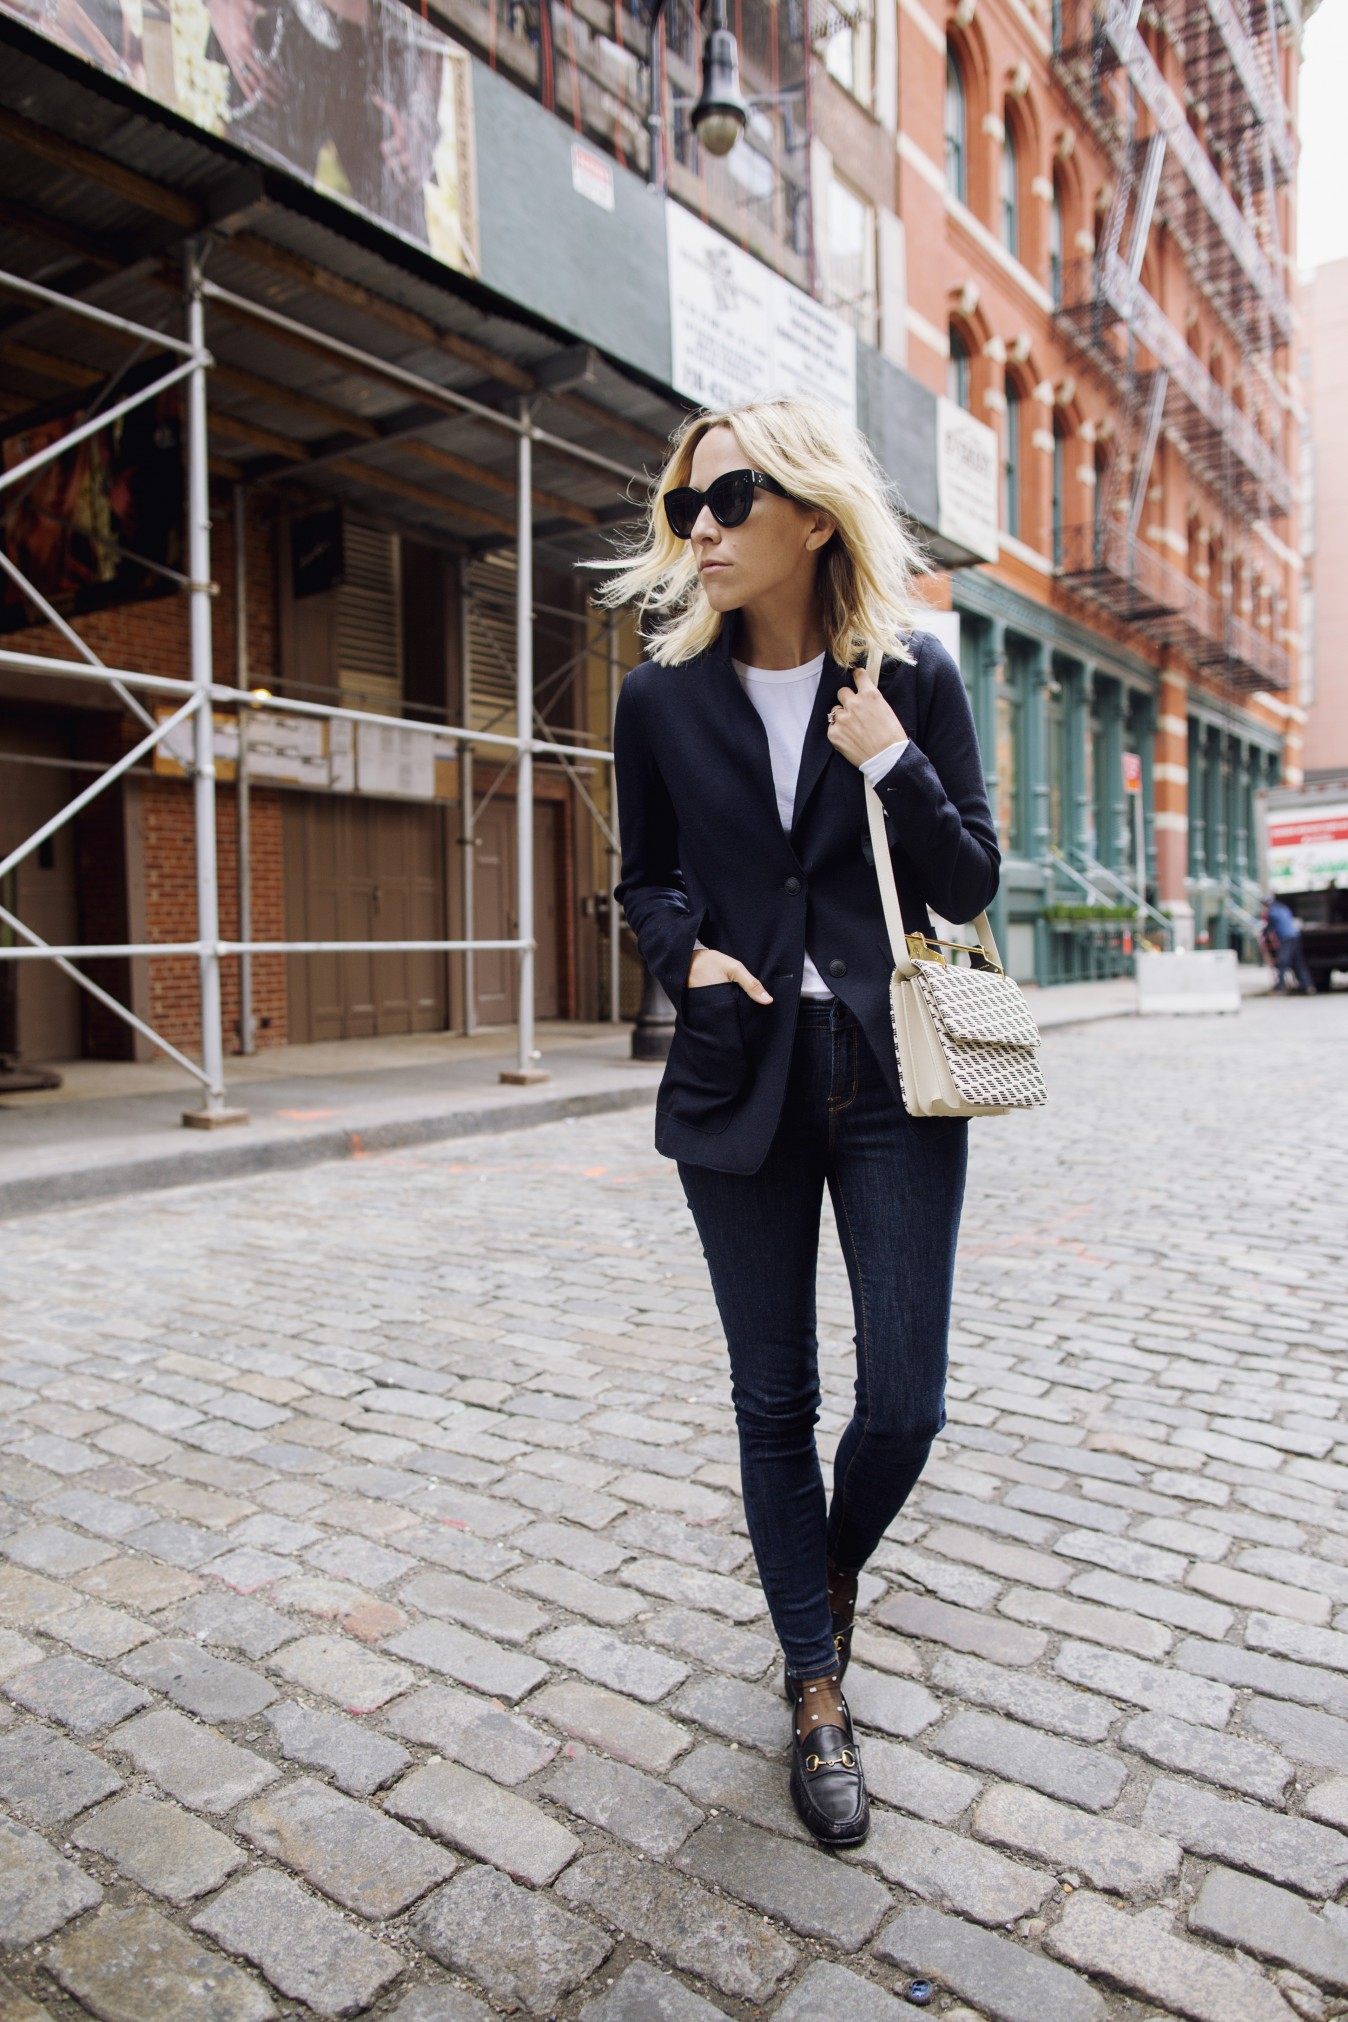 Jacey Duprie shows us how a blazer will make a fabulous alternative to a leather jacket or bomber when worn with simple denim jeans! Finish this look off with a cross body bag and loafers to steal Jacey's awesome style. Blazer: Rag & Bone, Loafers: Gucci Horsebit.